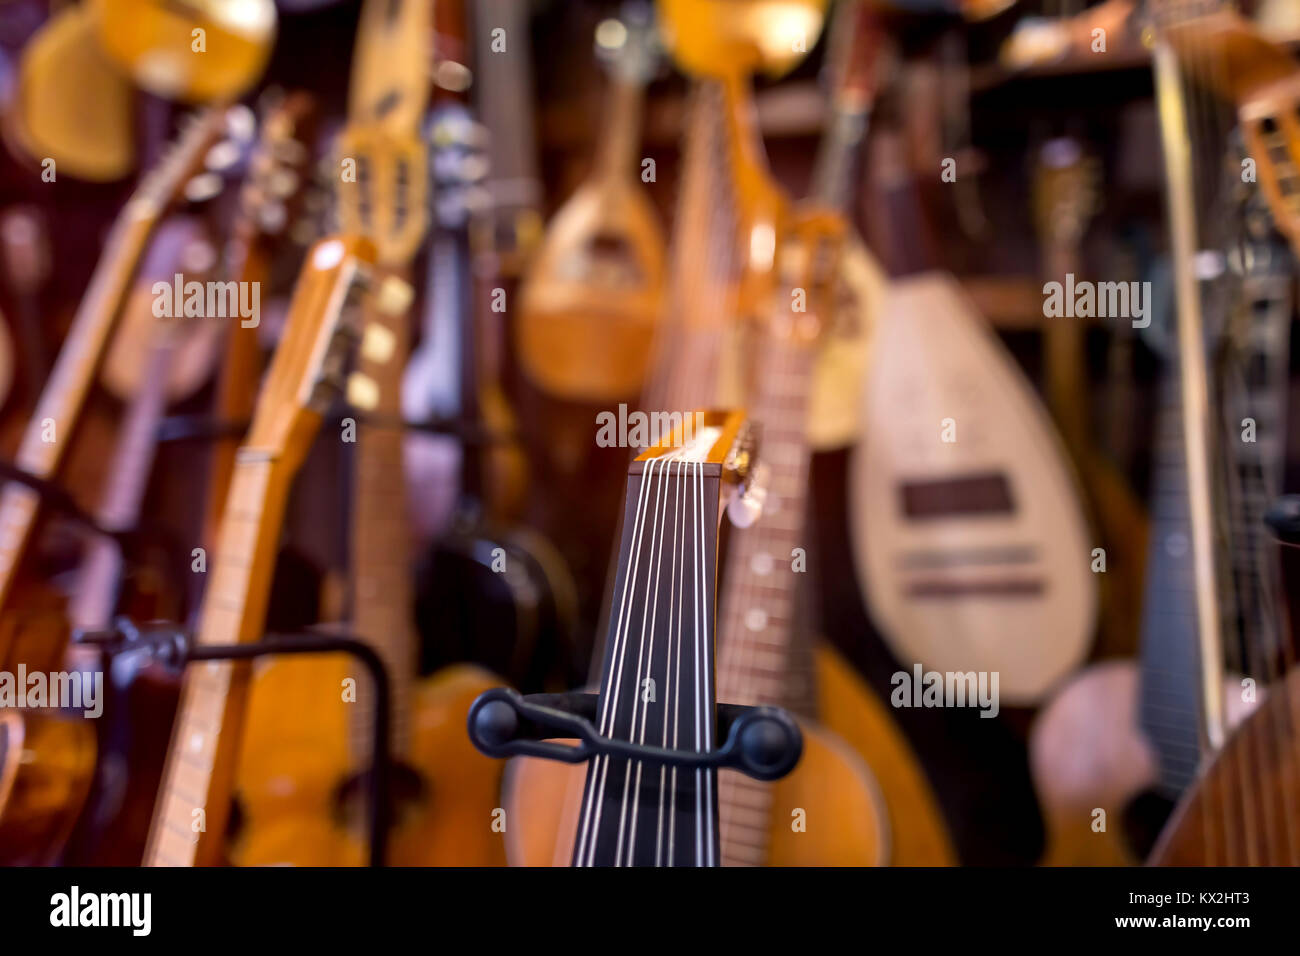 musical instruments shop with blurred background - Stock Image